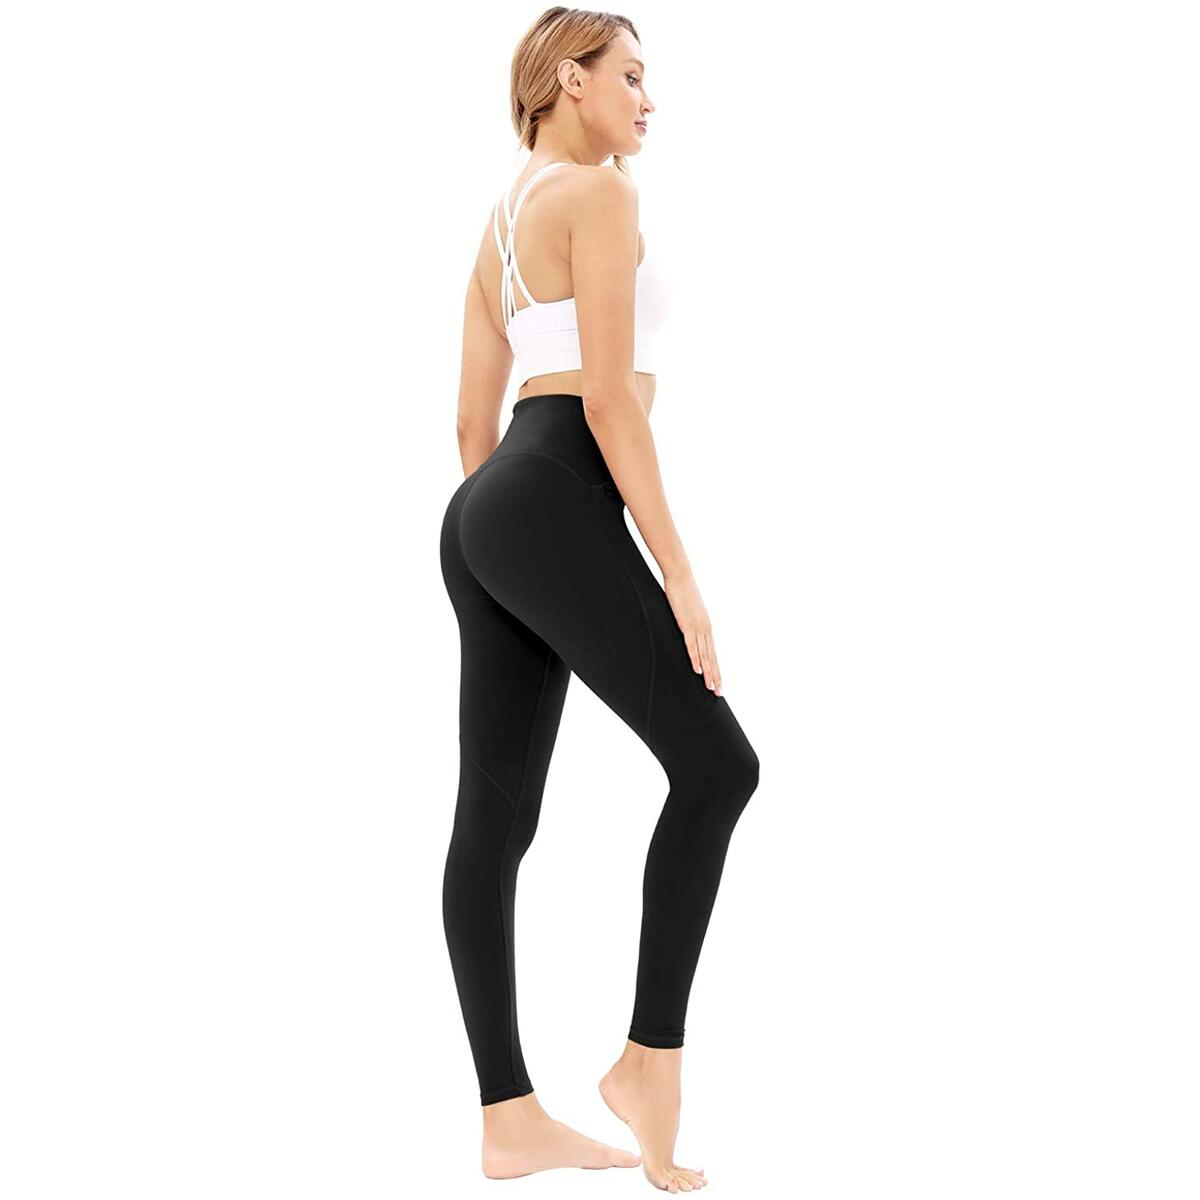 Davenil High Waist Workout Pants for Women with 3 Pockets Water Resistant Yoga Leggings Running Fitness Tummy Control